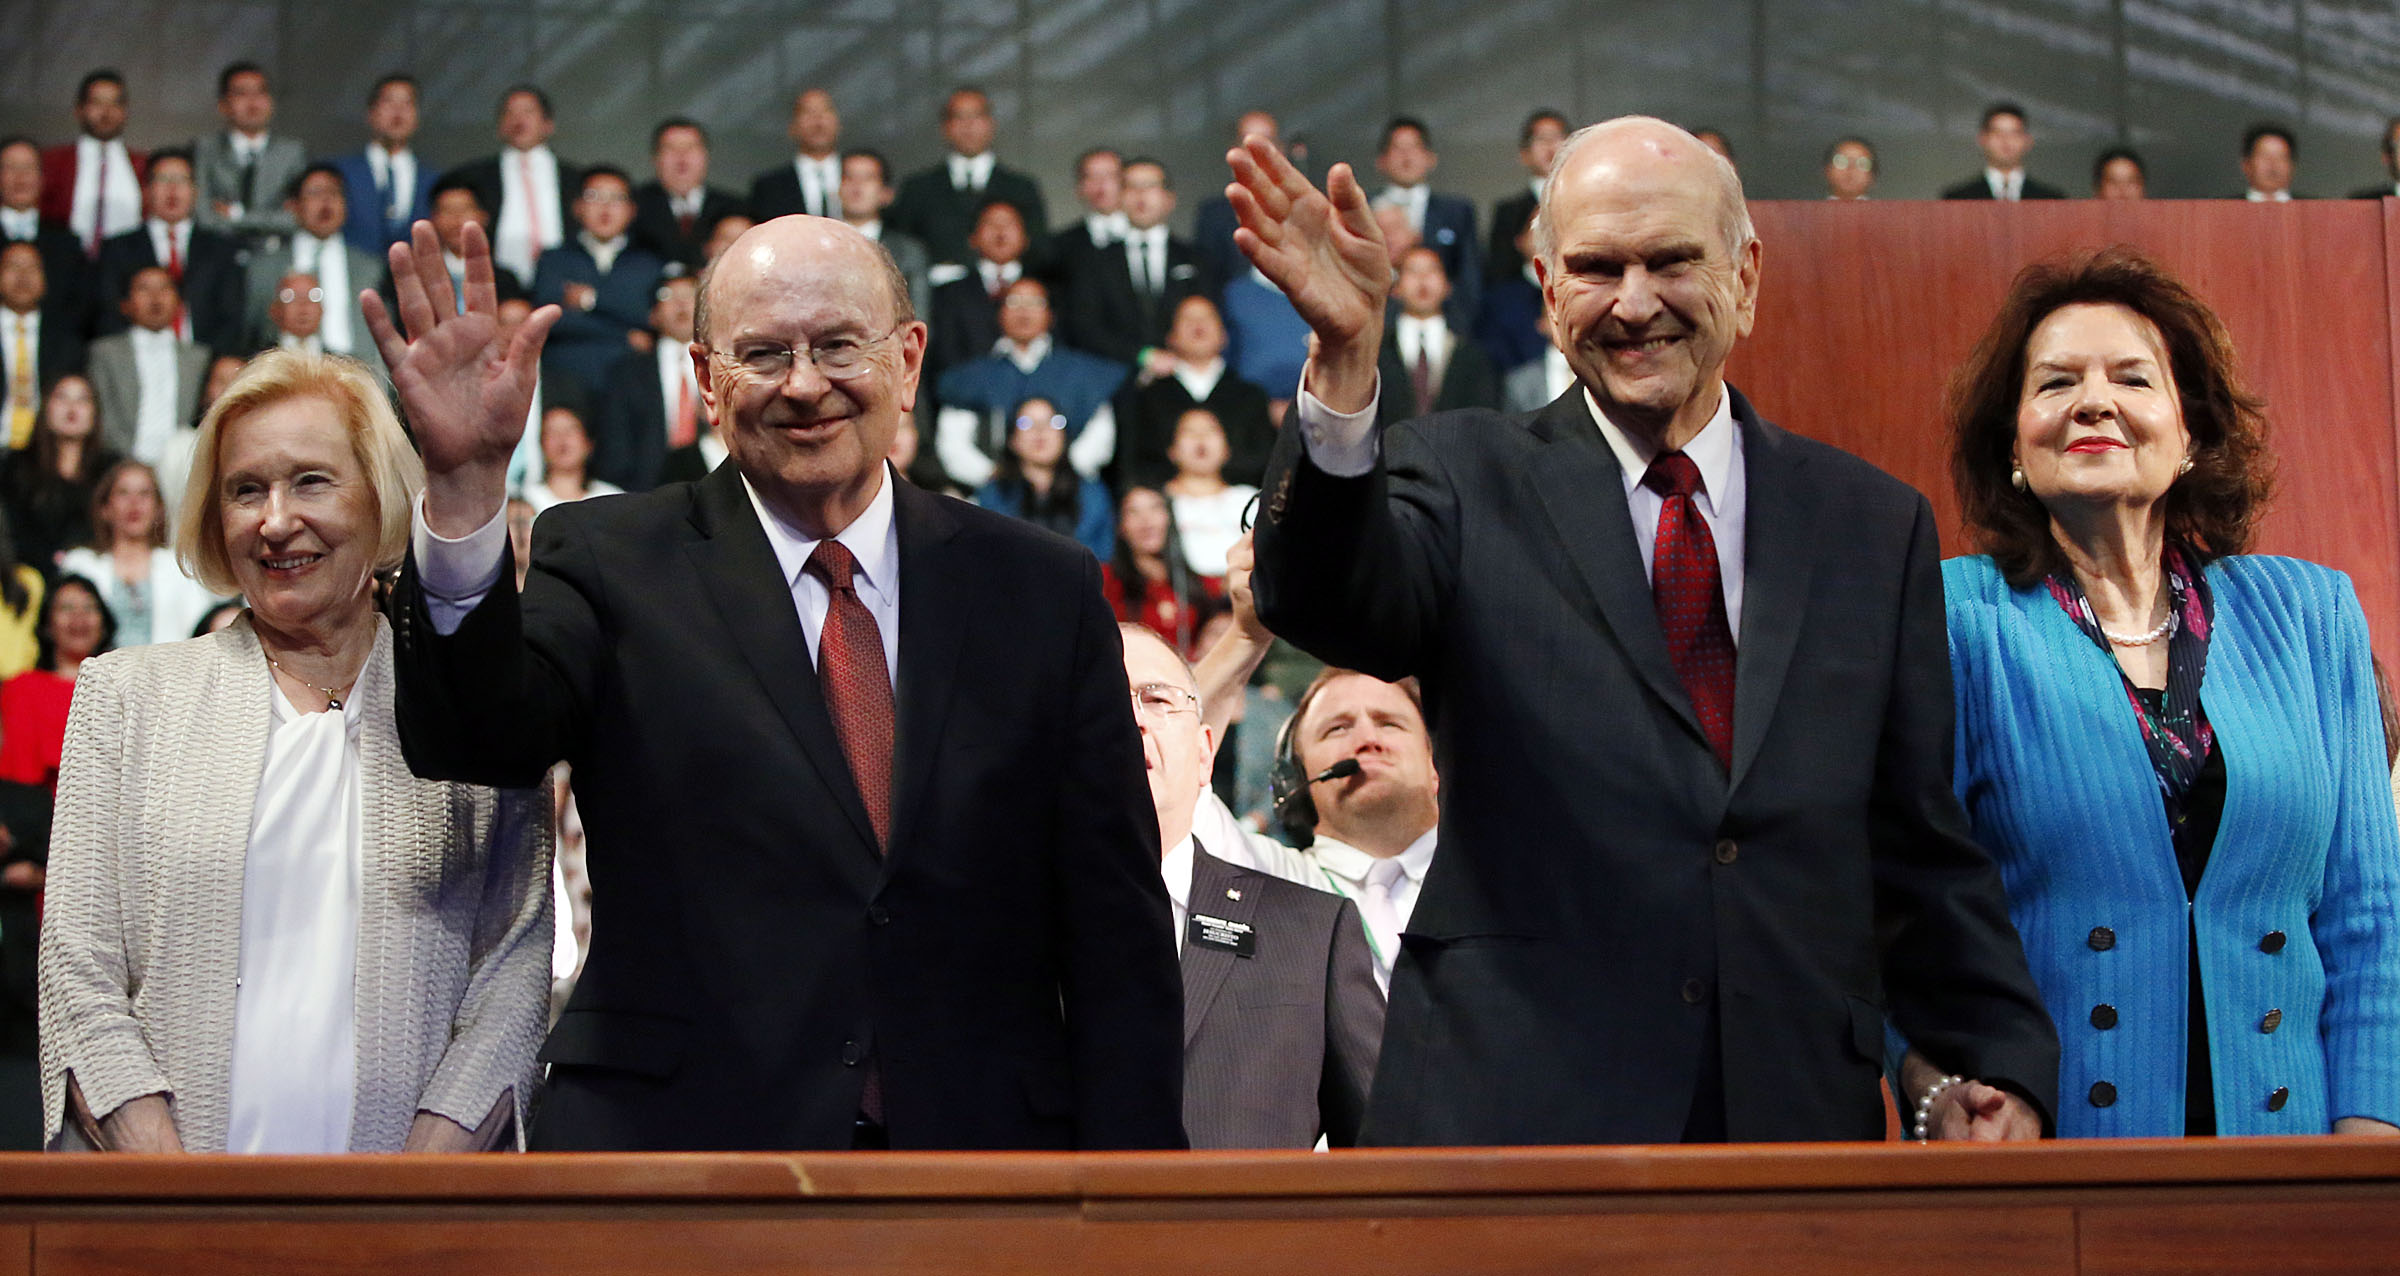 President Russell M. Nelson of The Church of Jesus Christ of Latter-day Saints and his wife, Sister Wendy Nelson, right, along with Elder Quentin L. Cook of the Quorum of the Twelve Apostles and his wife, Sister Mary G. Cook, say goodbye at the end of a Latin America Ministry devotional in Quito, Ecuador, on Monday, Aug. 26, 2019.